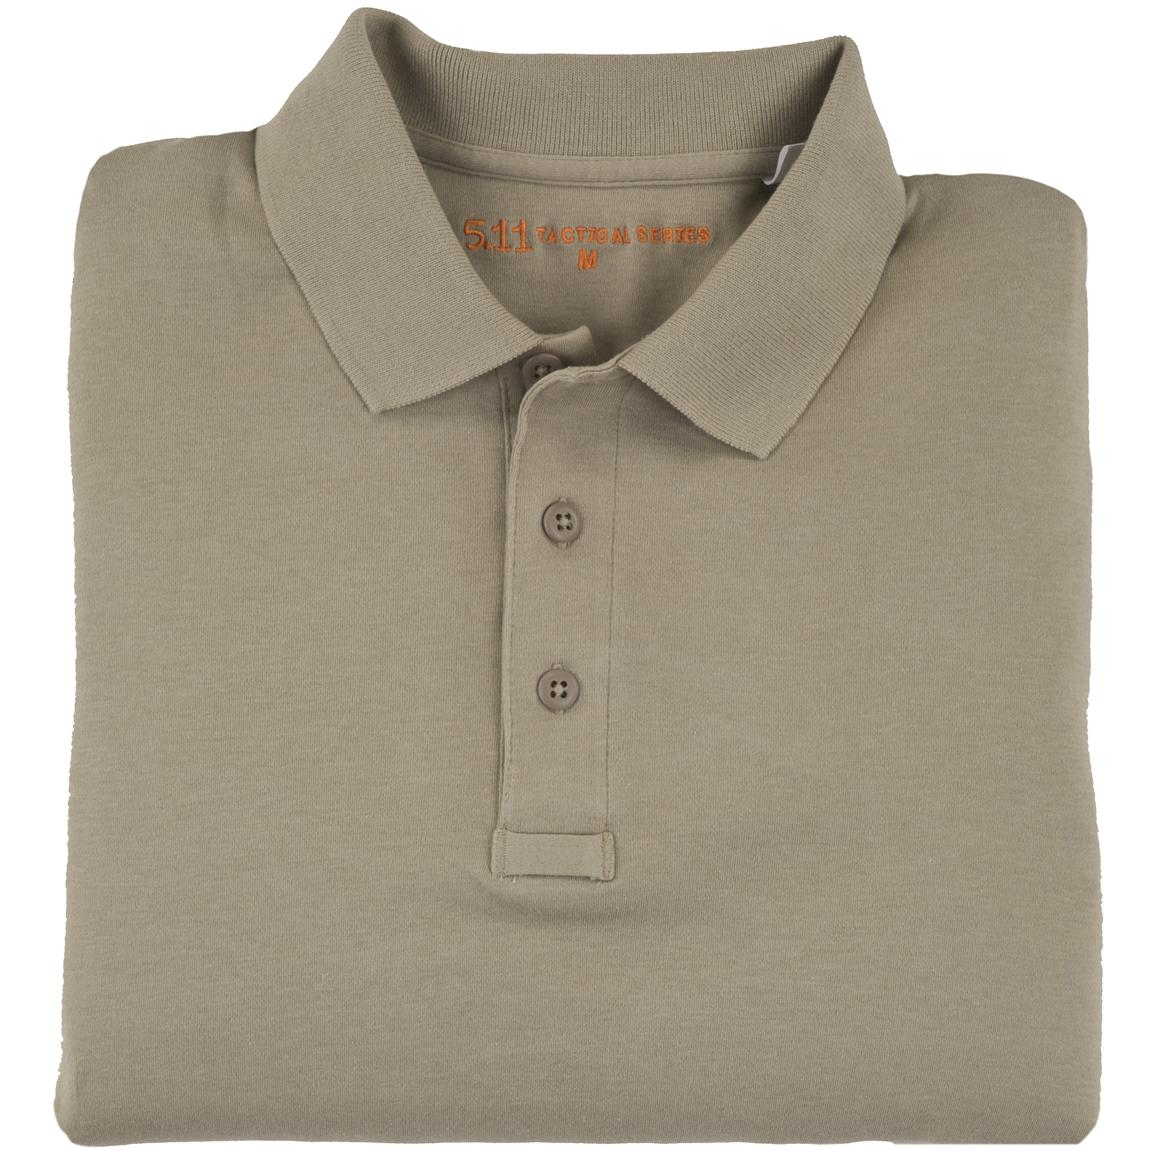 Tactical Jersey Polo from 5.11 Tactical, Silver Tan